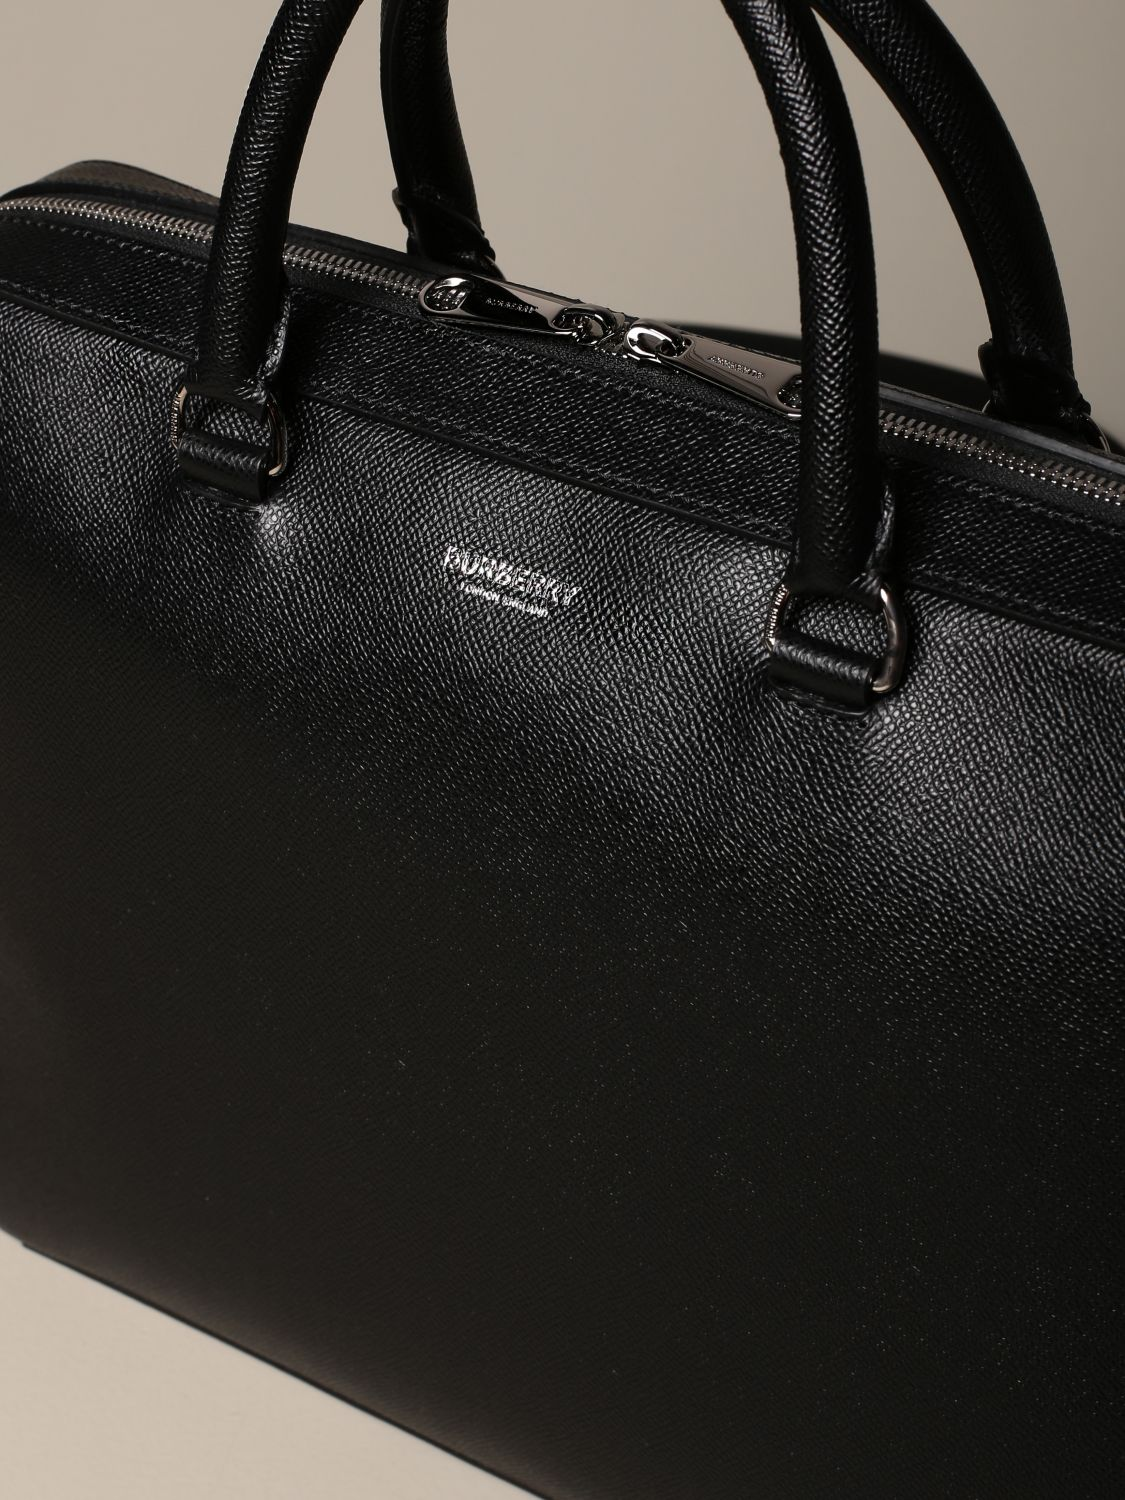 Bags Burberry: Burberry briefcase in grained leather black 3